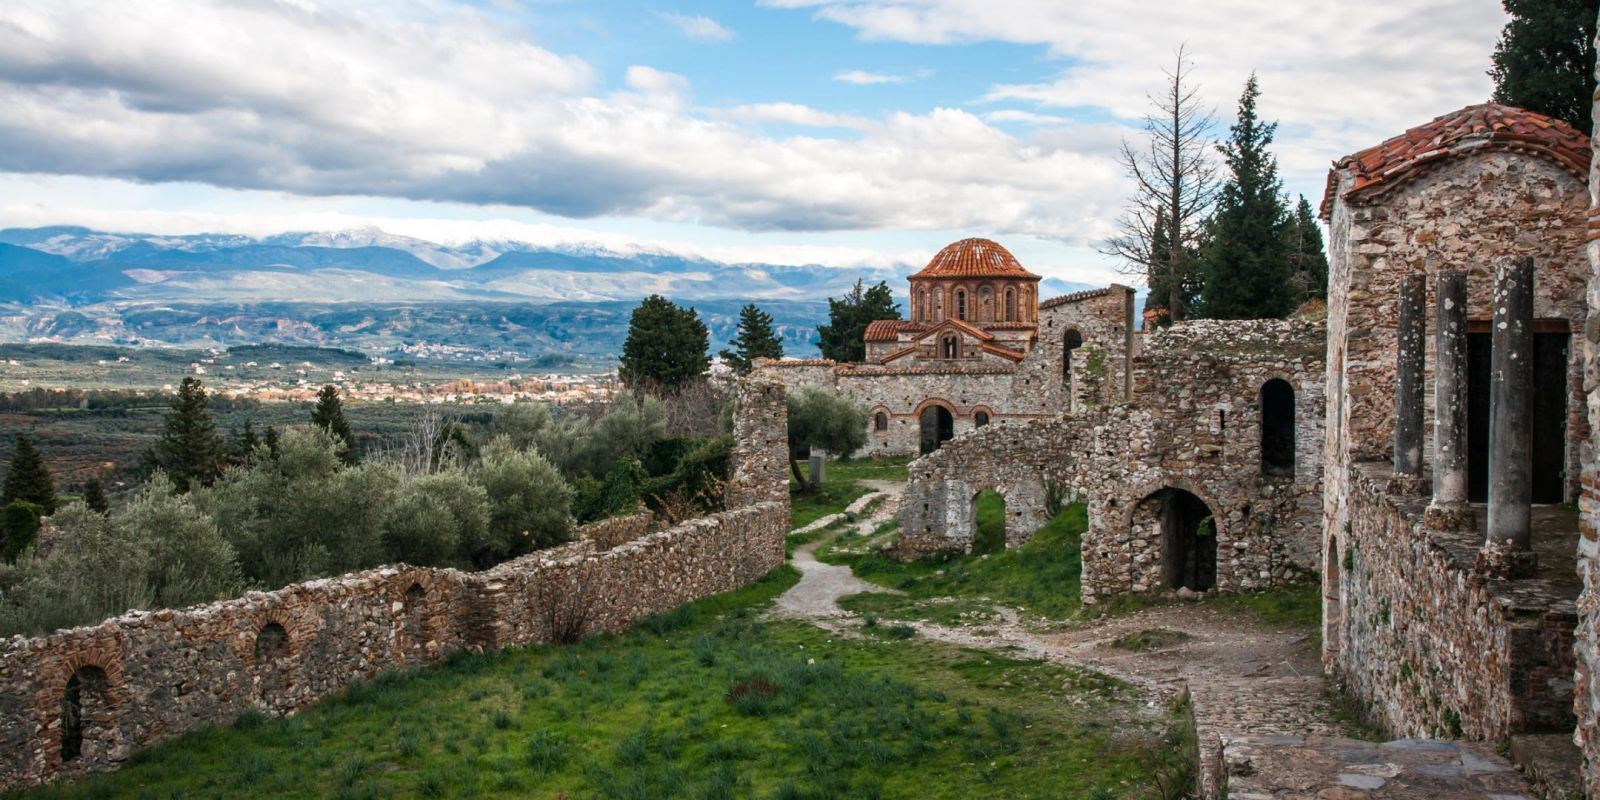 Mystras, Greece - Discover Peloponnese with all seasons 9 days tour from Athens. Monterrasol Travel small group tour with minivan.